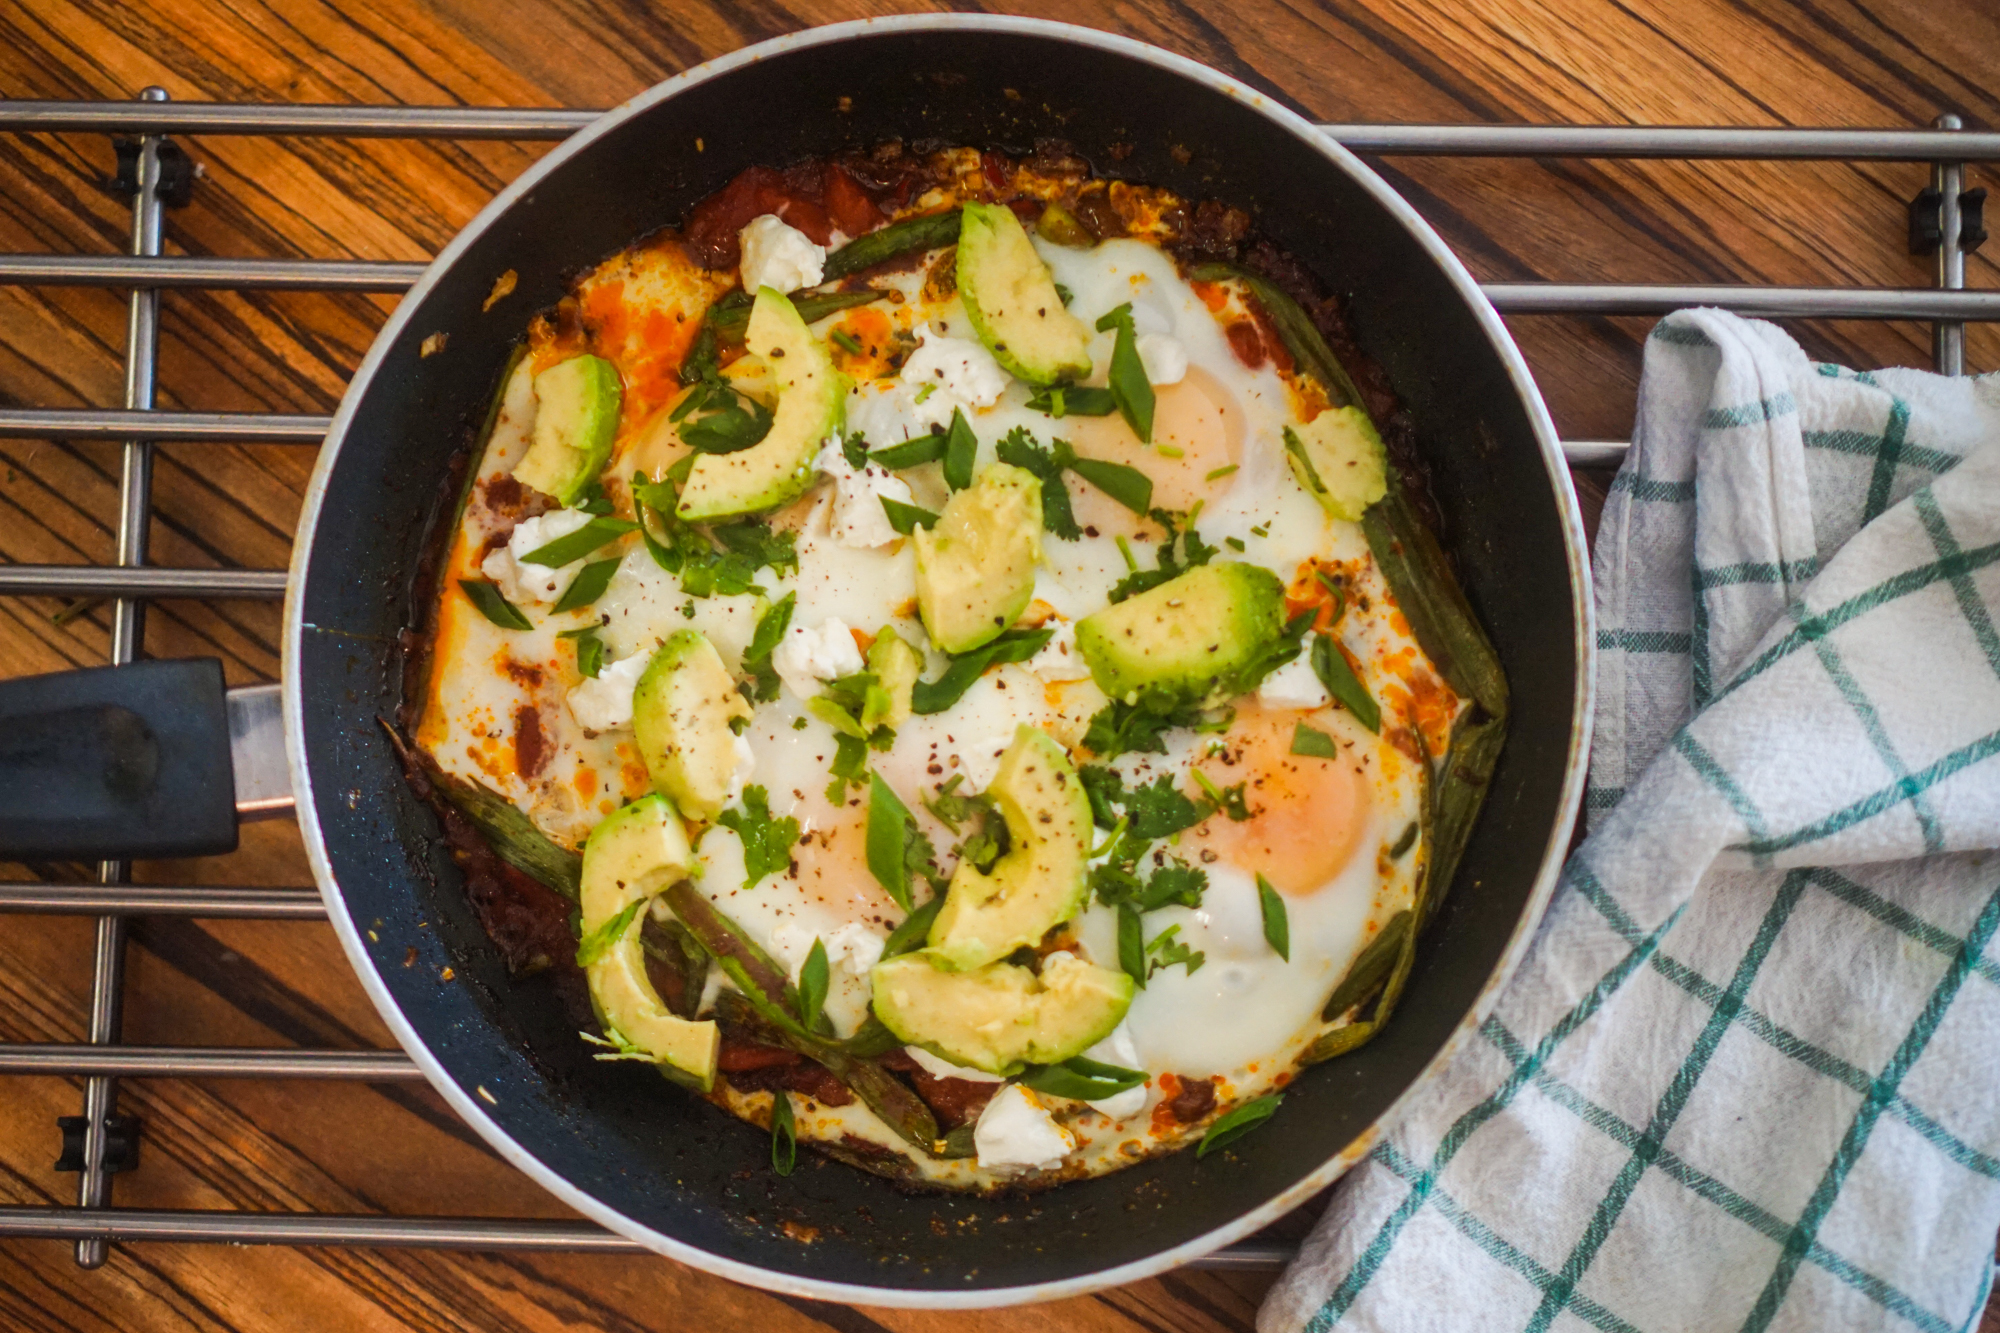 Spicy Shakshuka with Green Onion, Goat Cheese, & Avocado